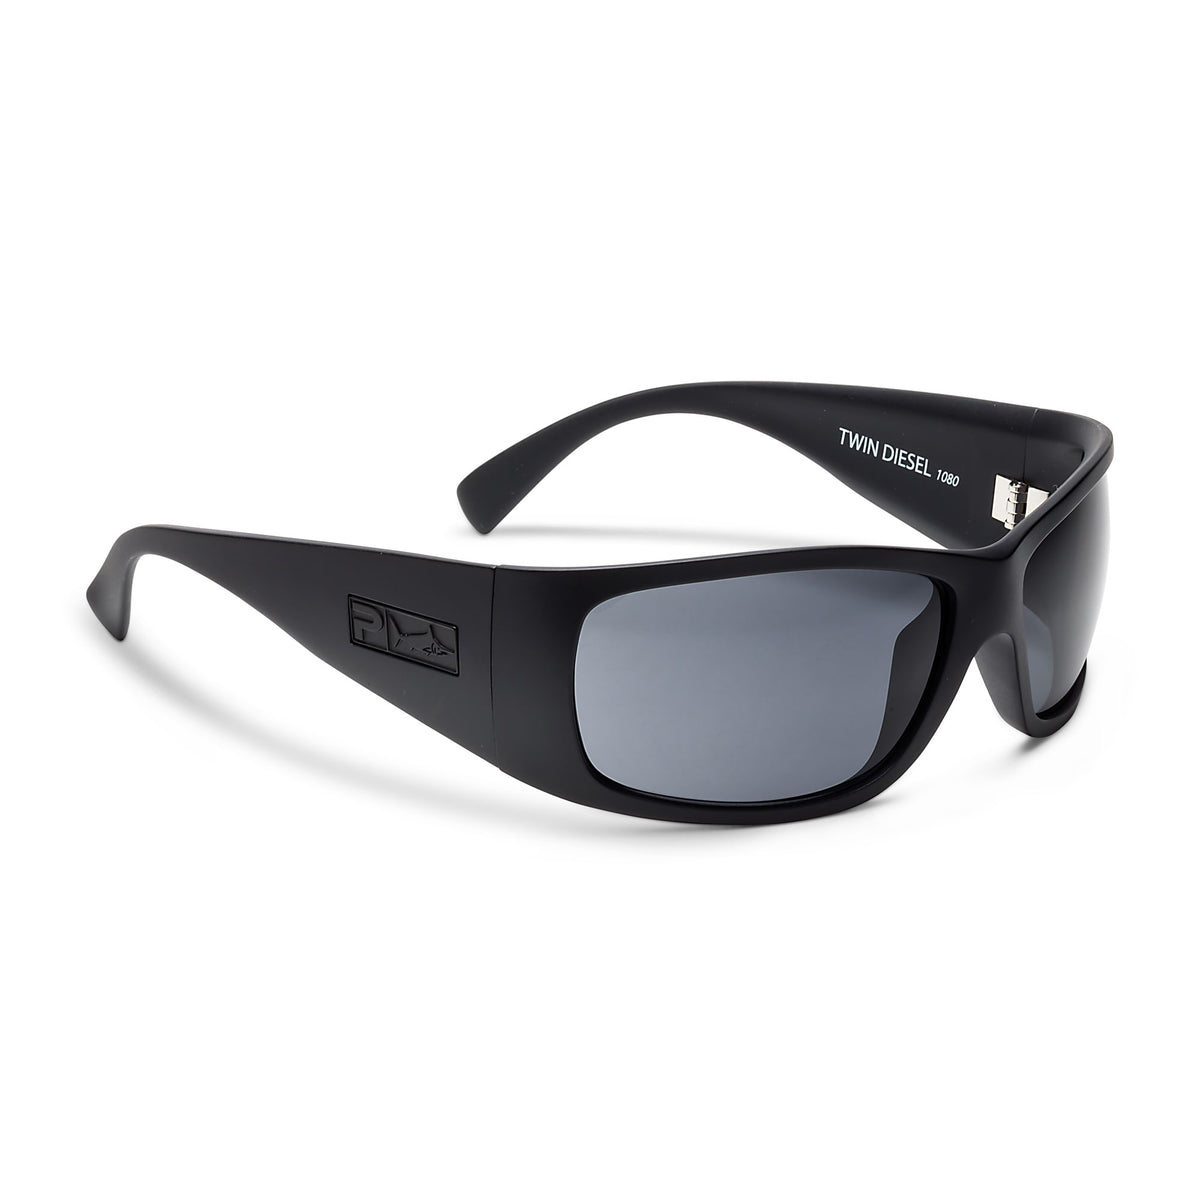 Twin Diesel - Polarized Polycarbonate Lens Big Image - 1